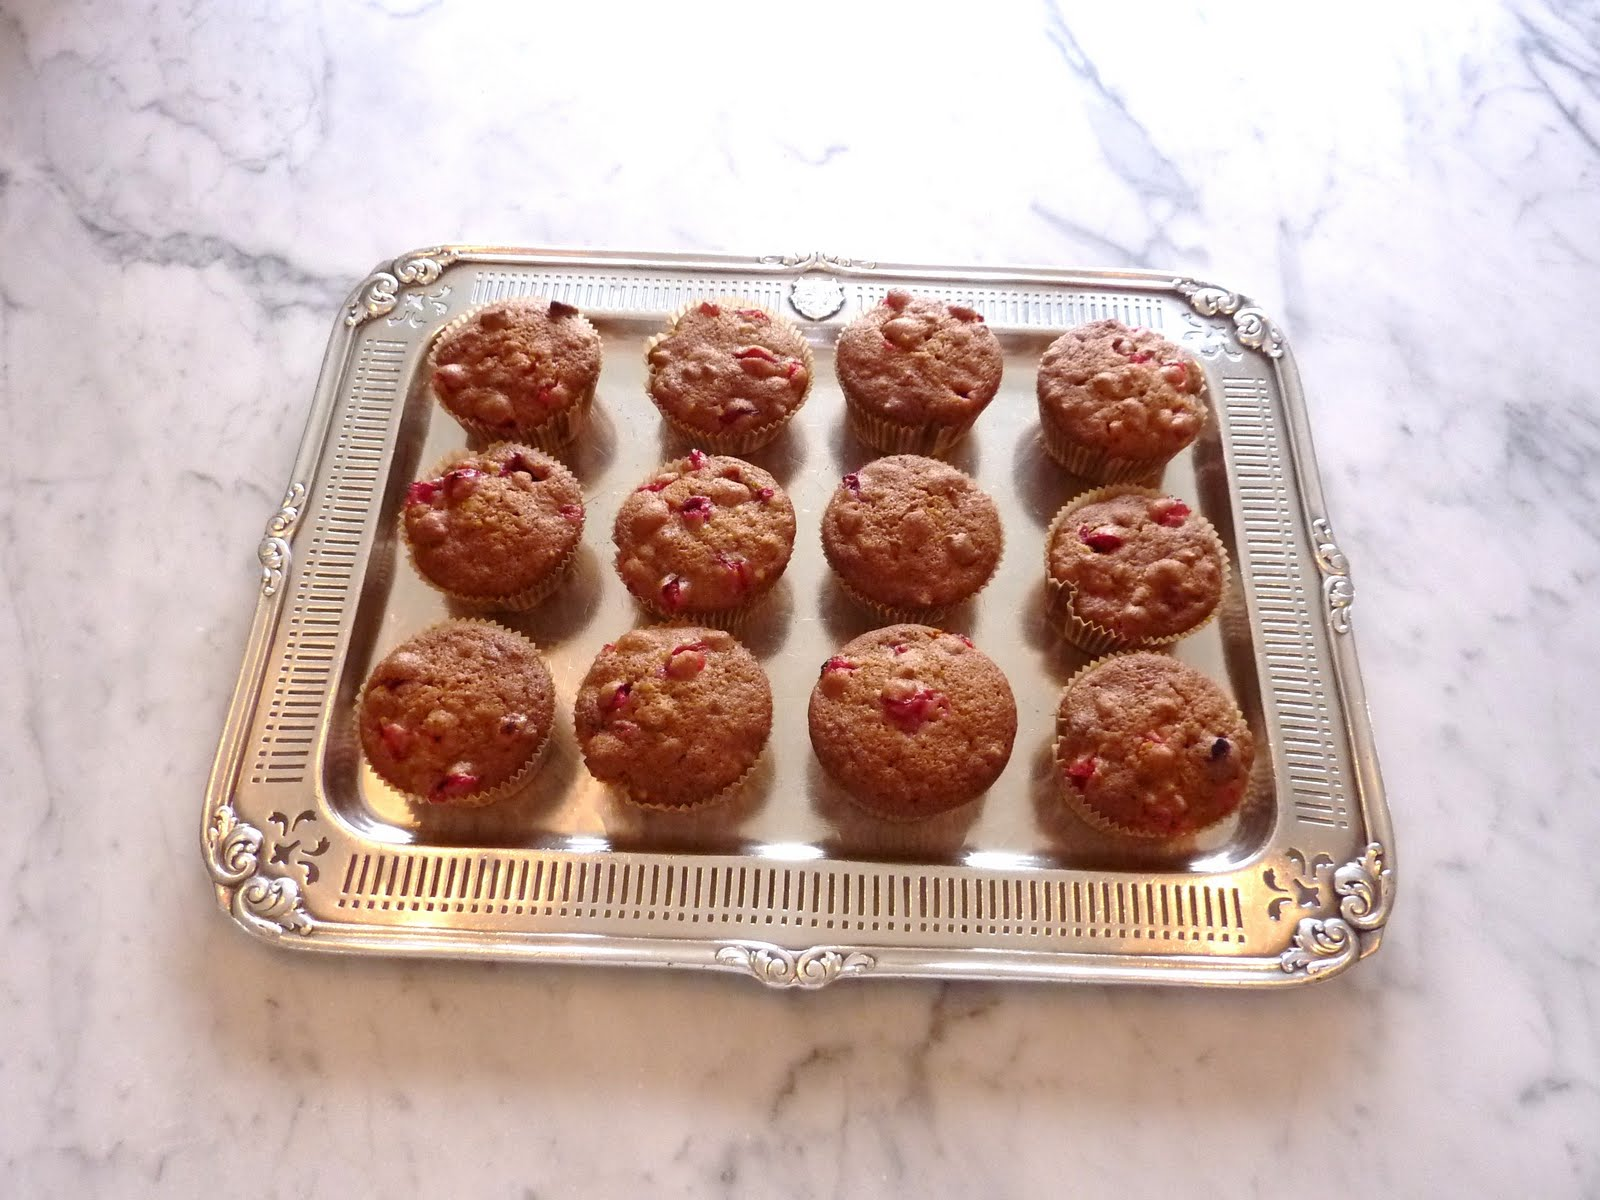 muffins on vintage hotel silver tray from the Belmont New York